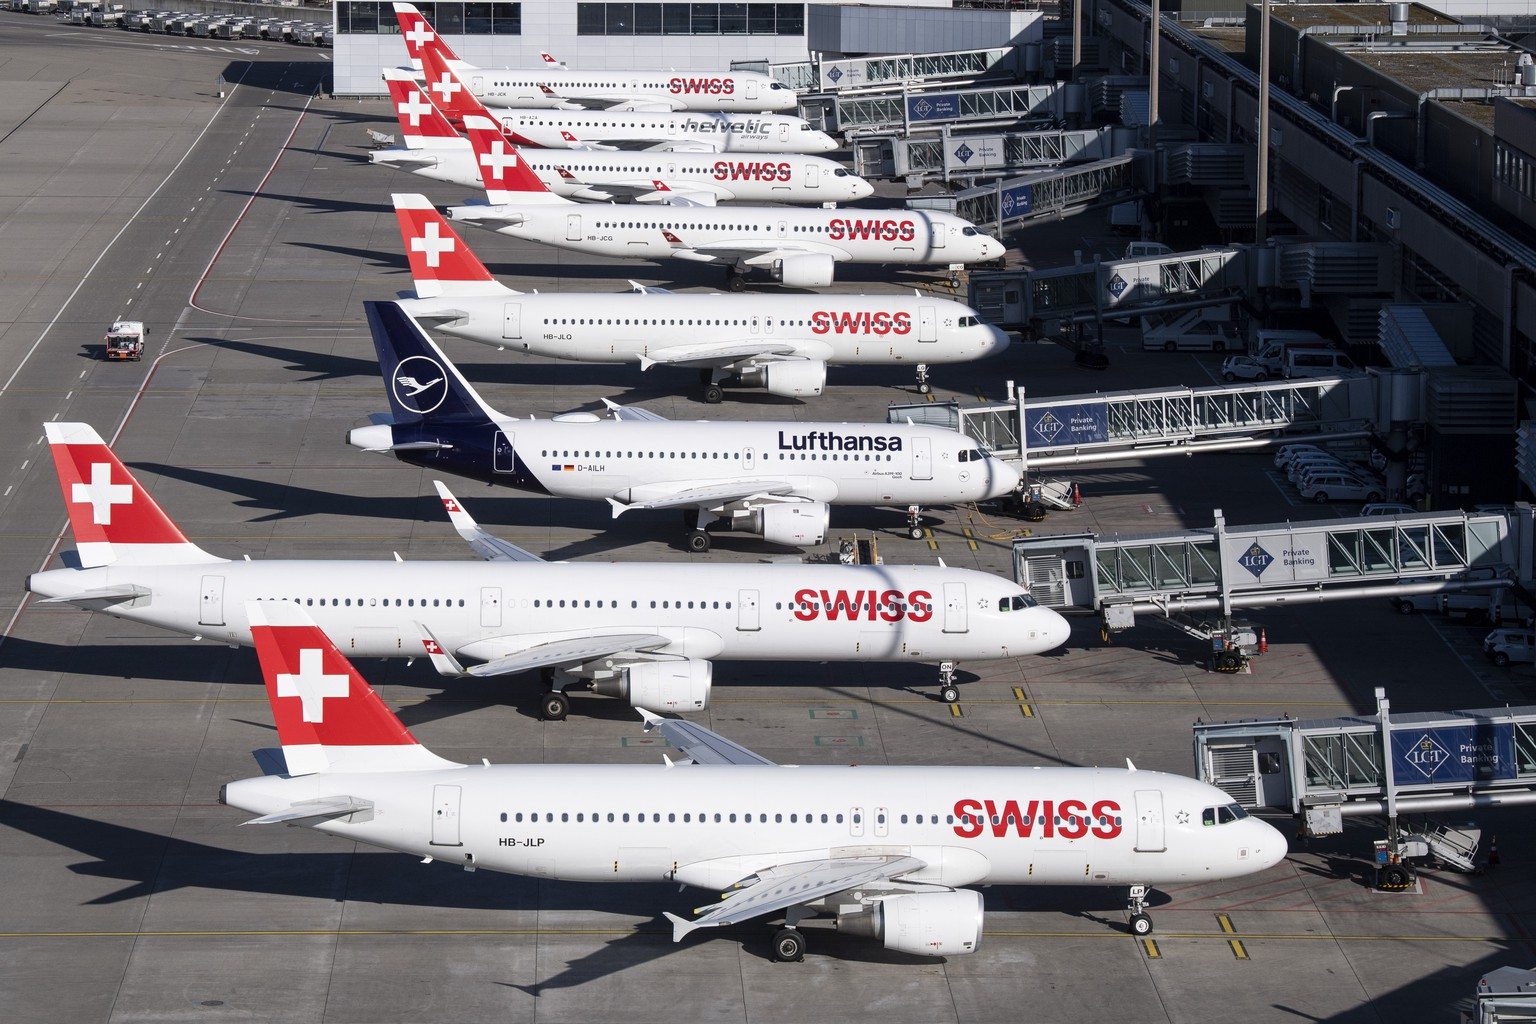 Parked planes of the airline Swiss at the airport in Zurich, Switzerland on Monday, 23 March 2020. The bigger part of the Swiss airplanes are not in use due to the outbreak of the coronavirus. (KEYSTONE/Ennio Leanza)